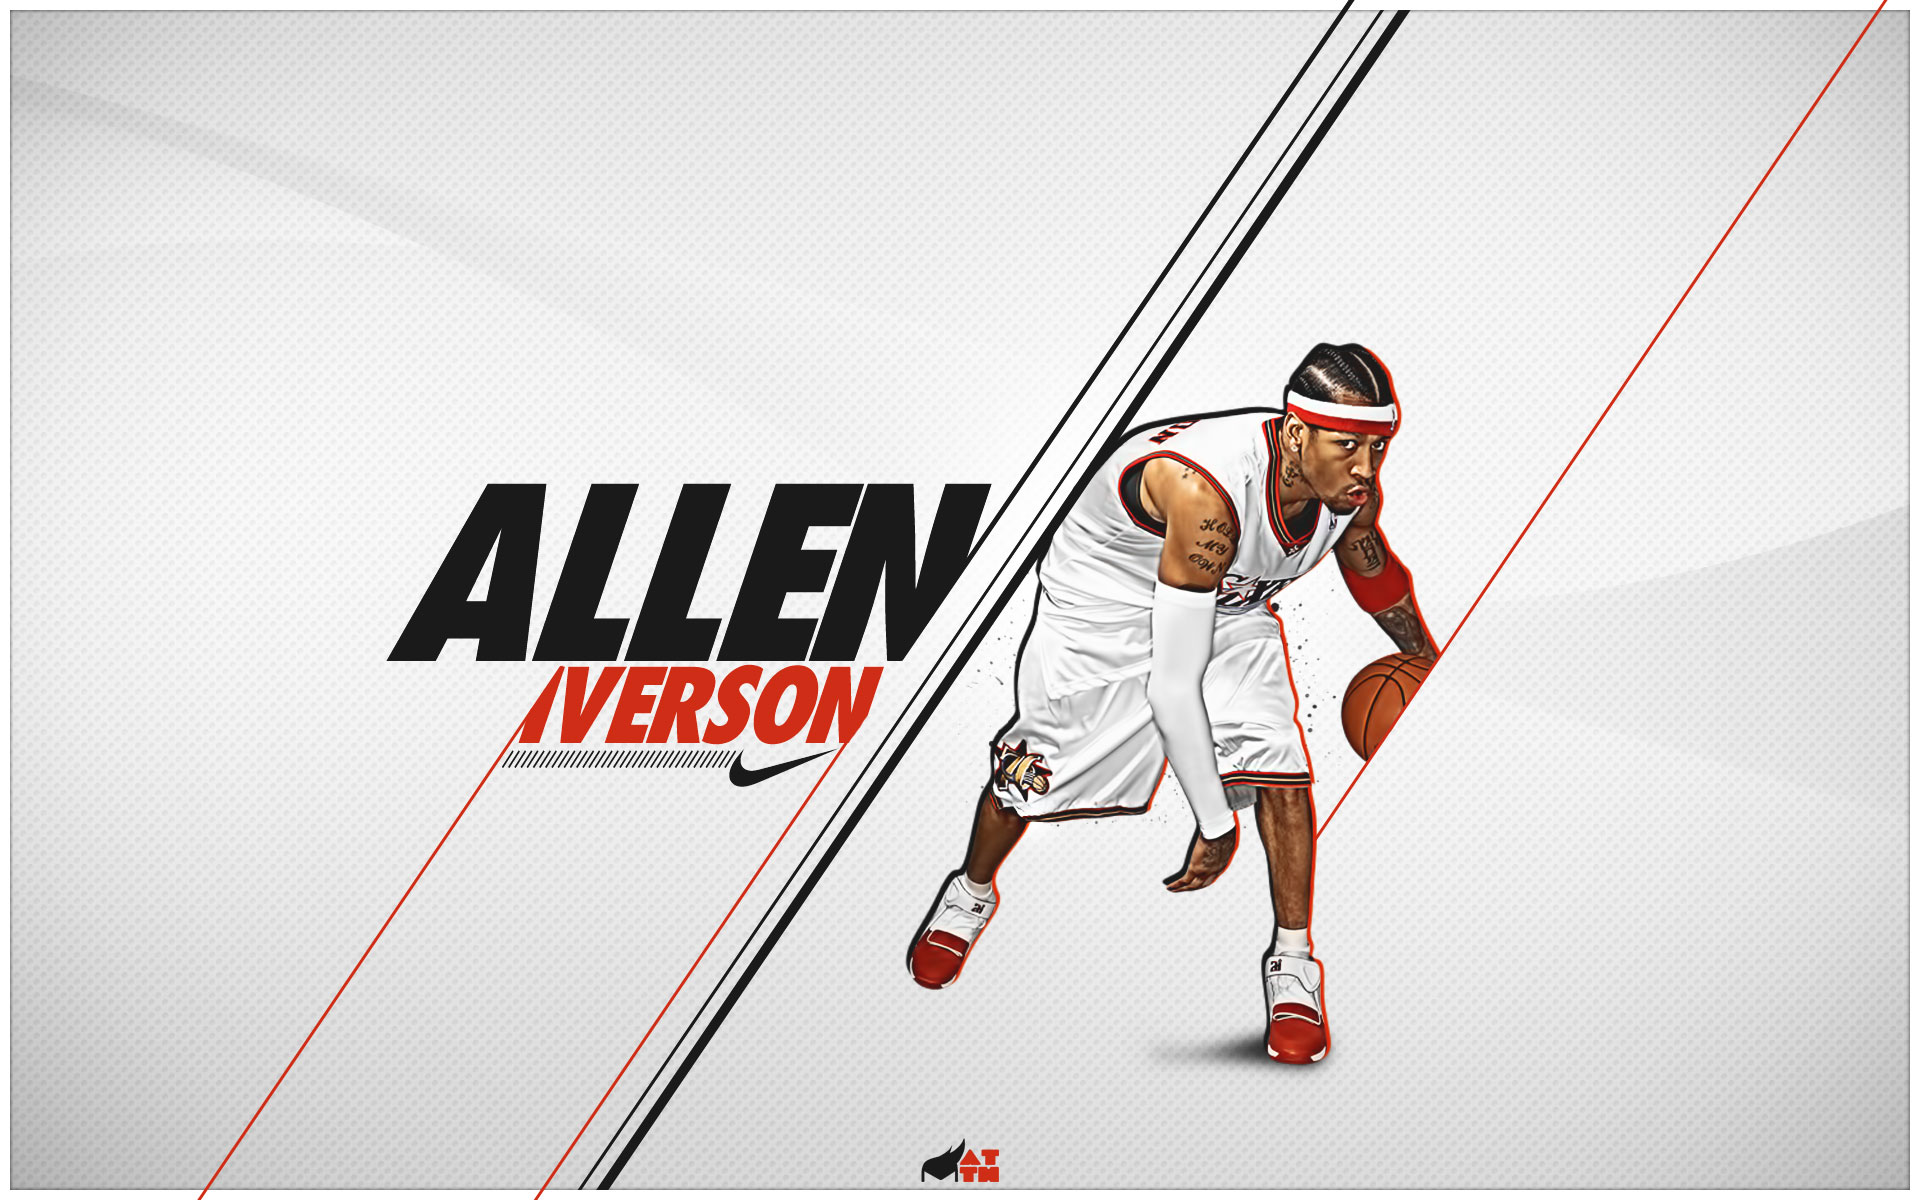 Allen Iverson Full HD Wallpaper And Background Image